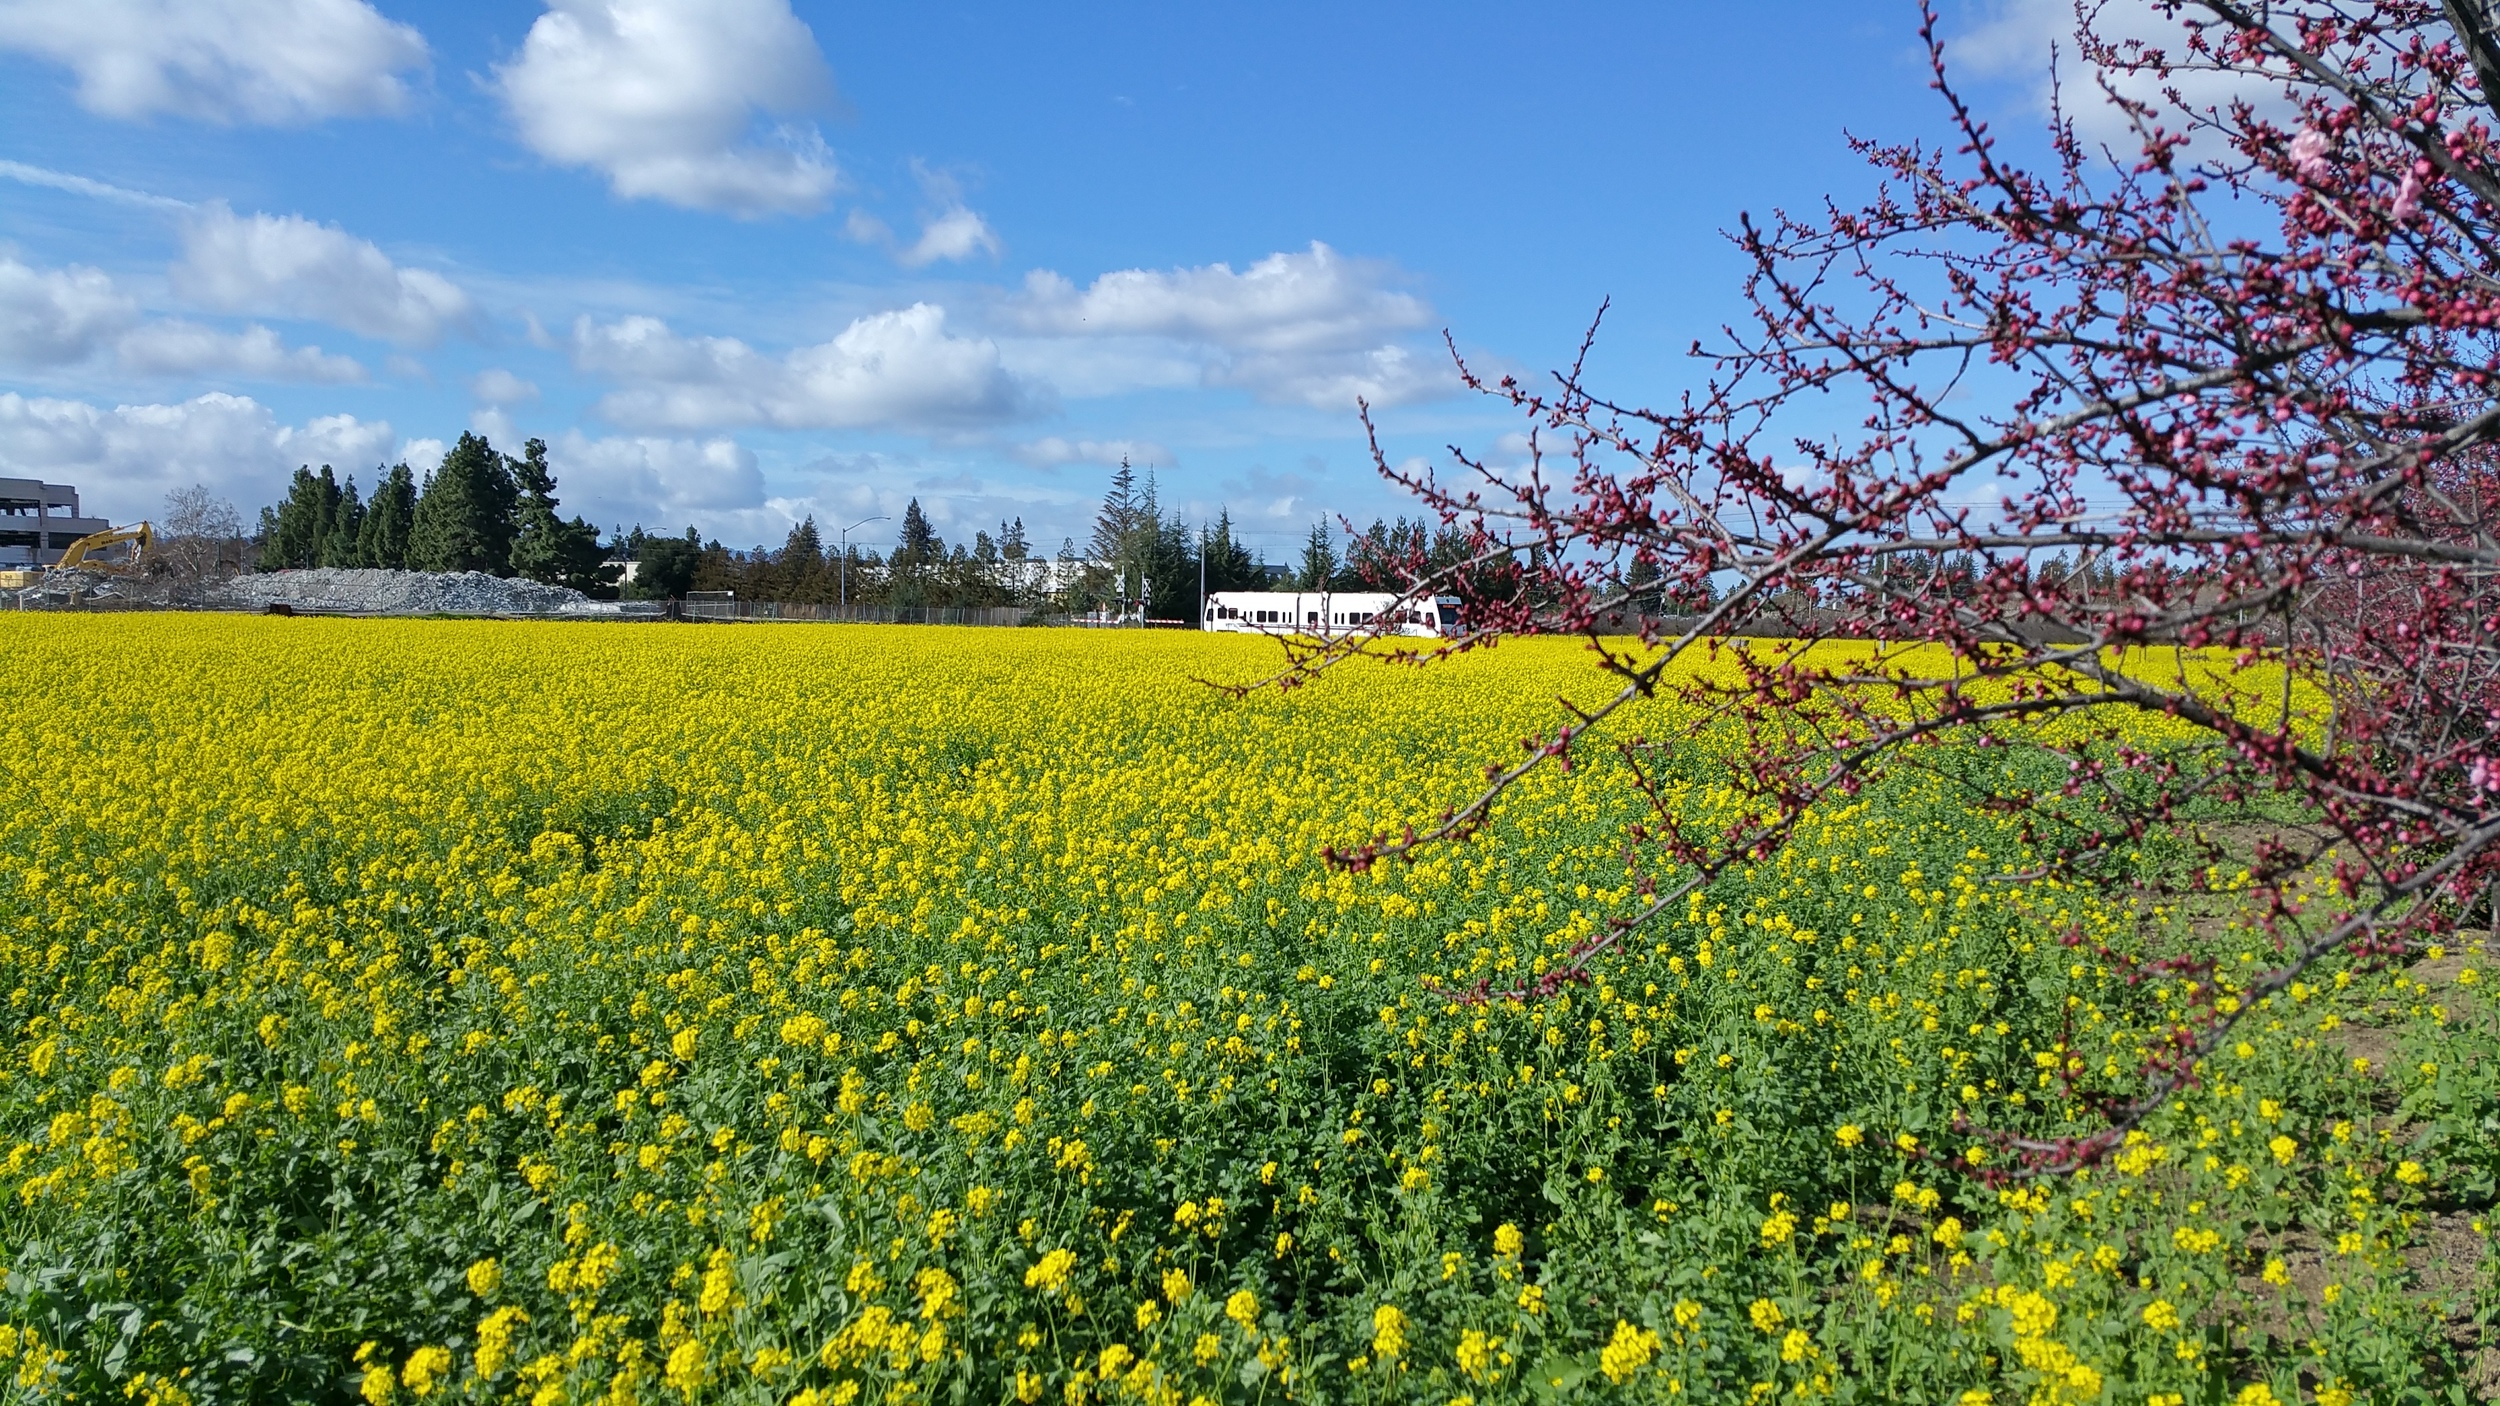 The VTA light rail heads toward Levi's Stadium through one of the last of the old Mountain View orchards. Now there are only wildflowers in bloom.